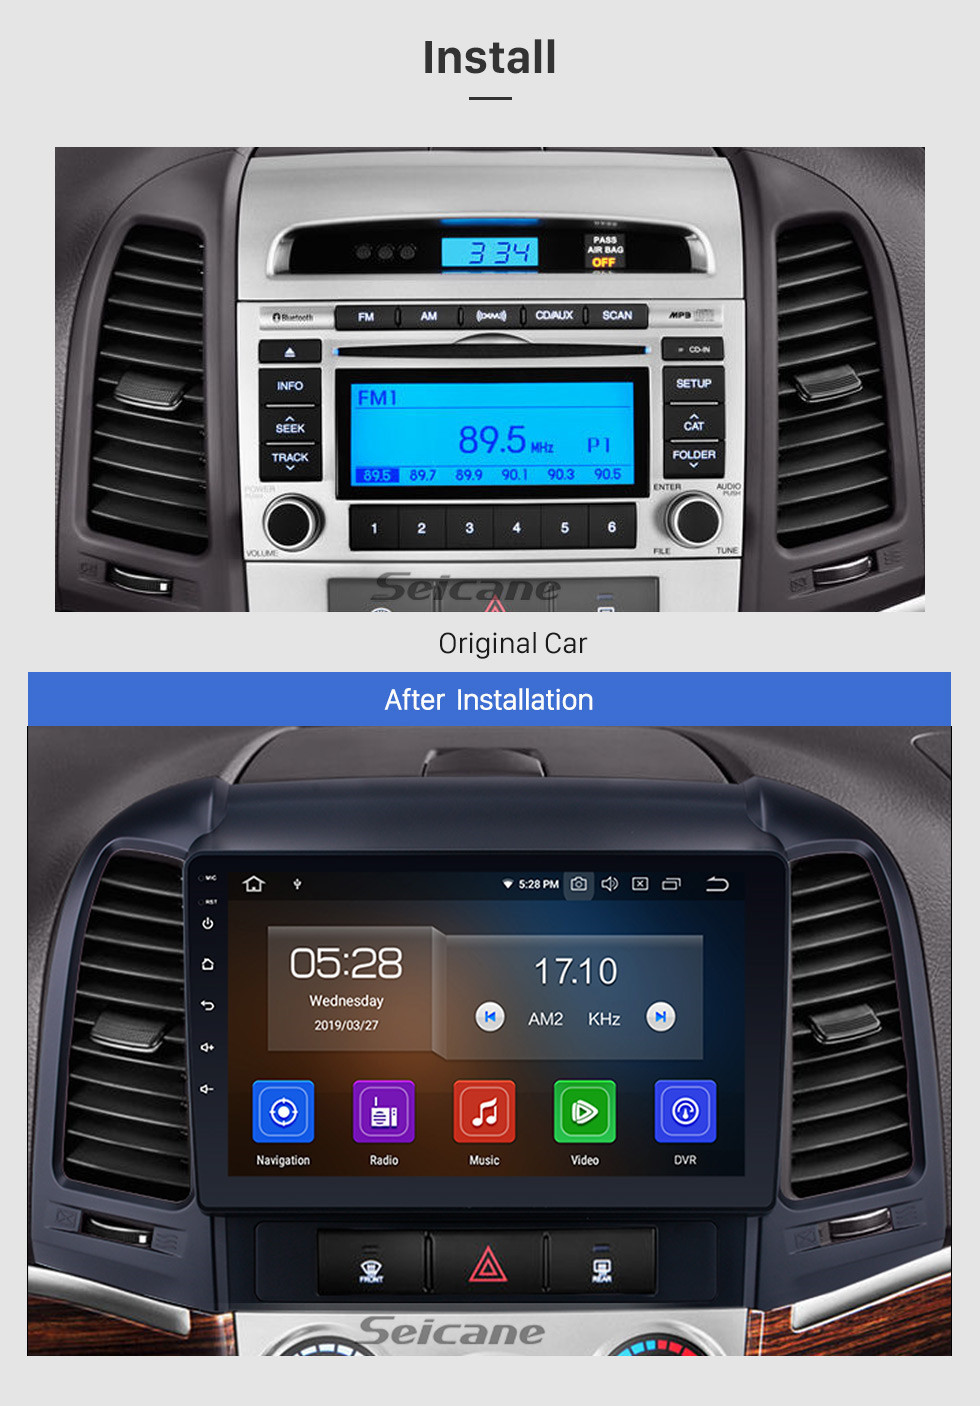 Seicane For 2006-2012 Hyundai SANTA FE OEM Android 10.0 HD 1024*600 touch screen GPS navigation system Radio Bluetooth OBD2 DVR Rearview camera TV 1080P Video USB WIFI Steering Wheel Control